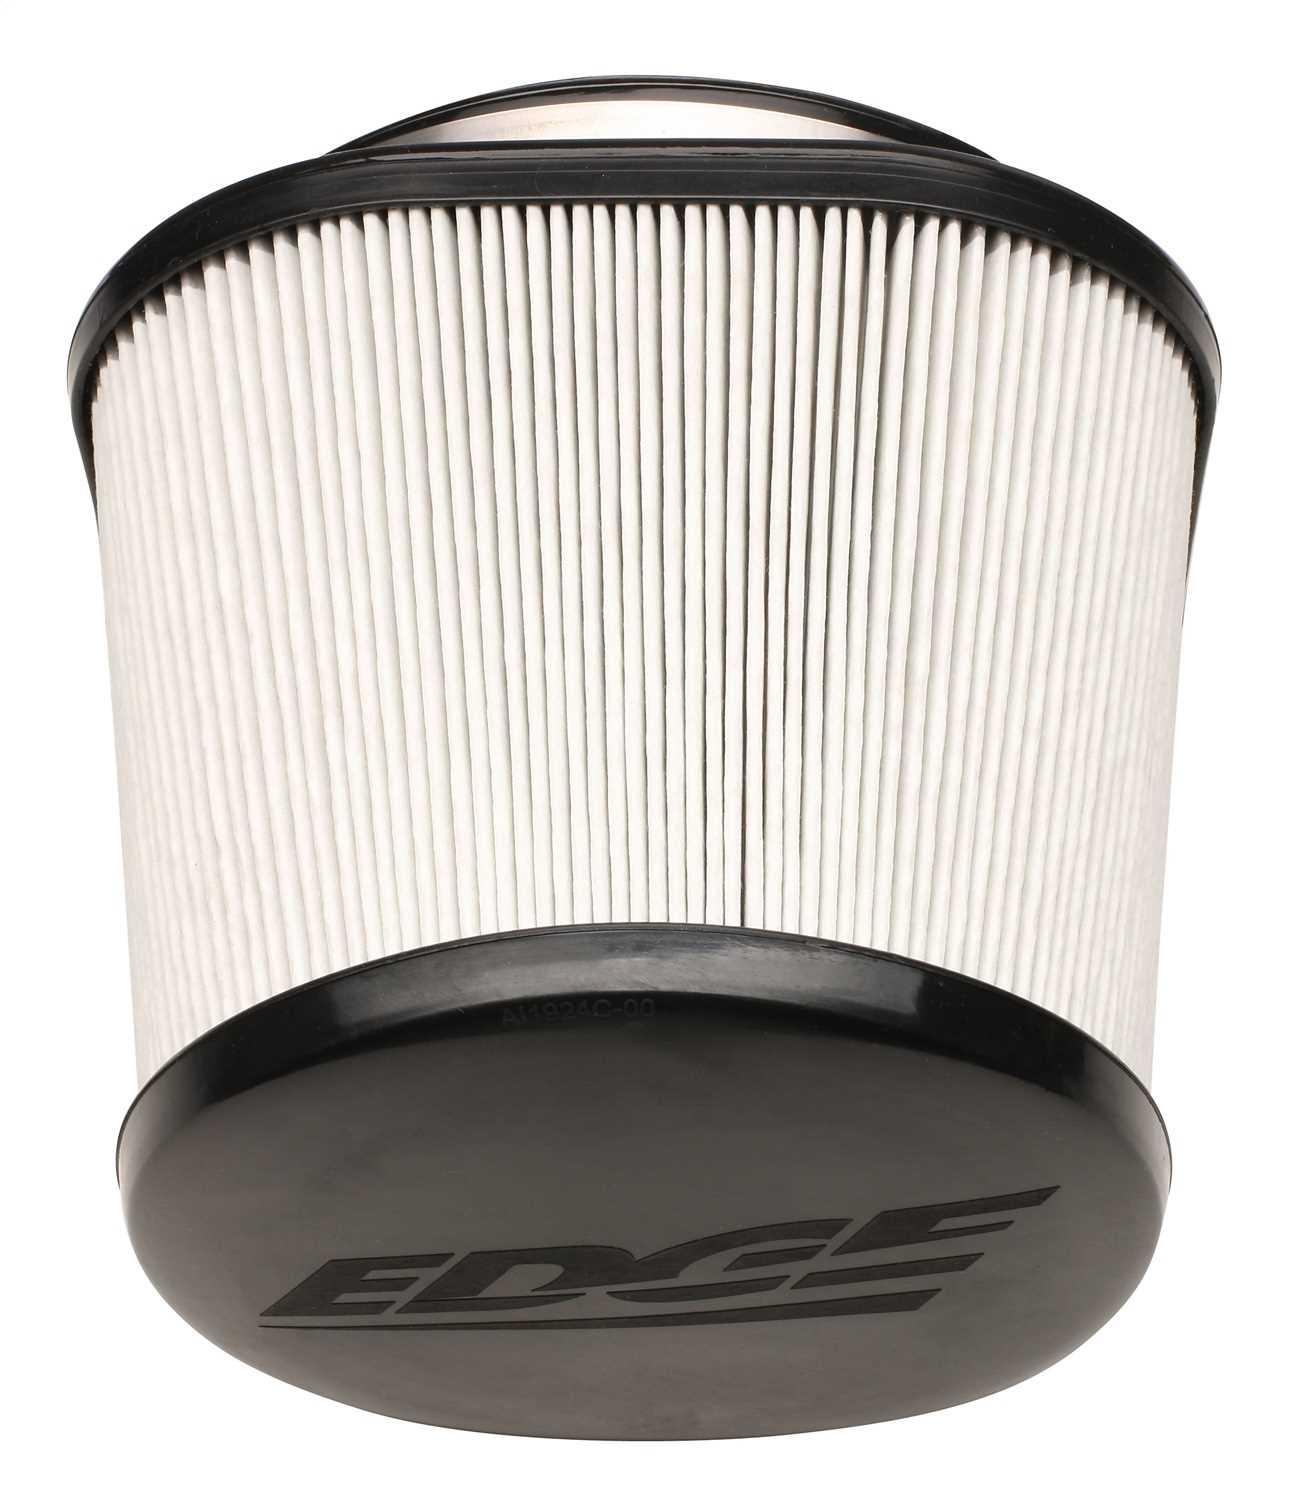 Edge Products Jammer Filter Wrap Covers 88001-D